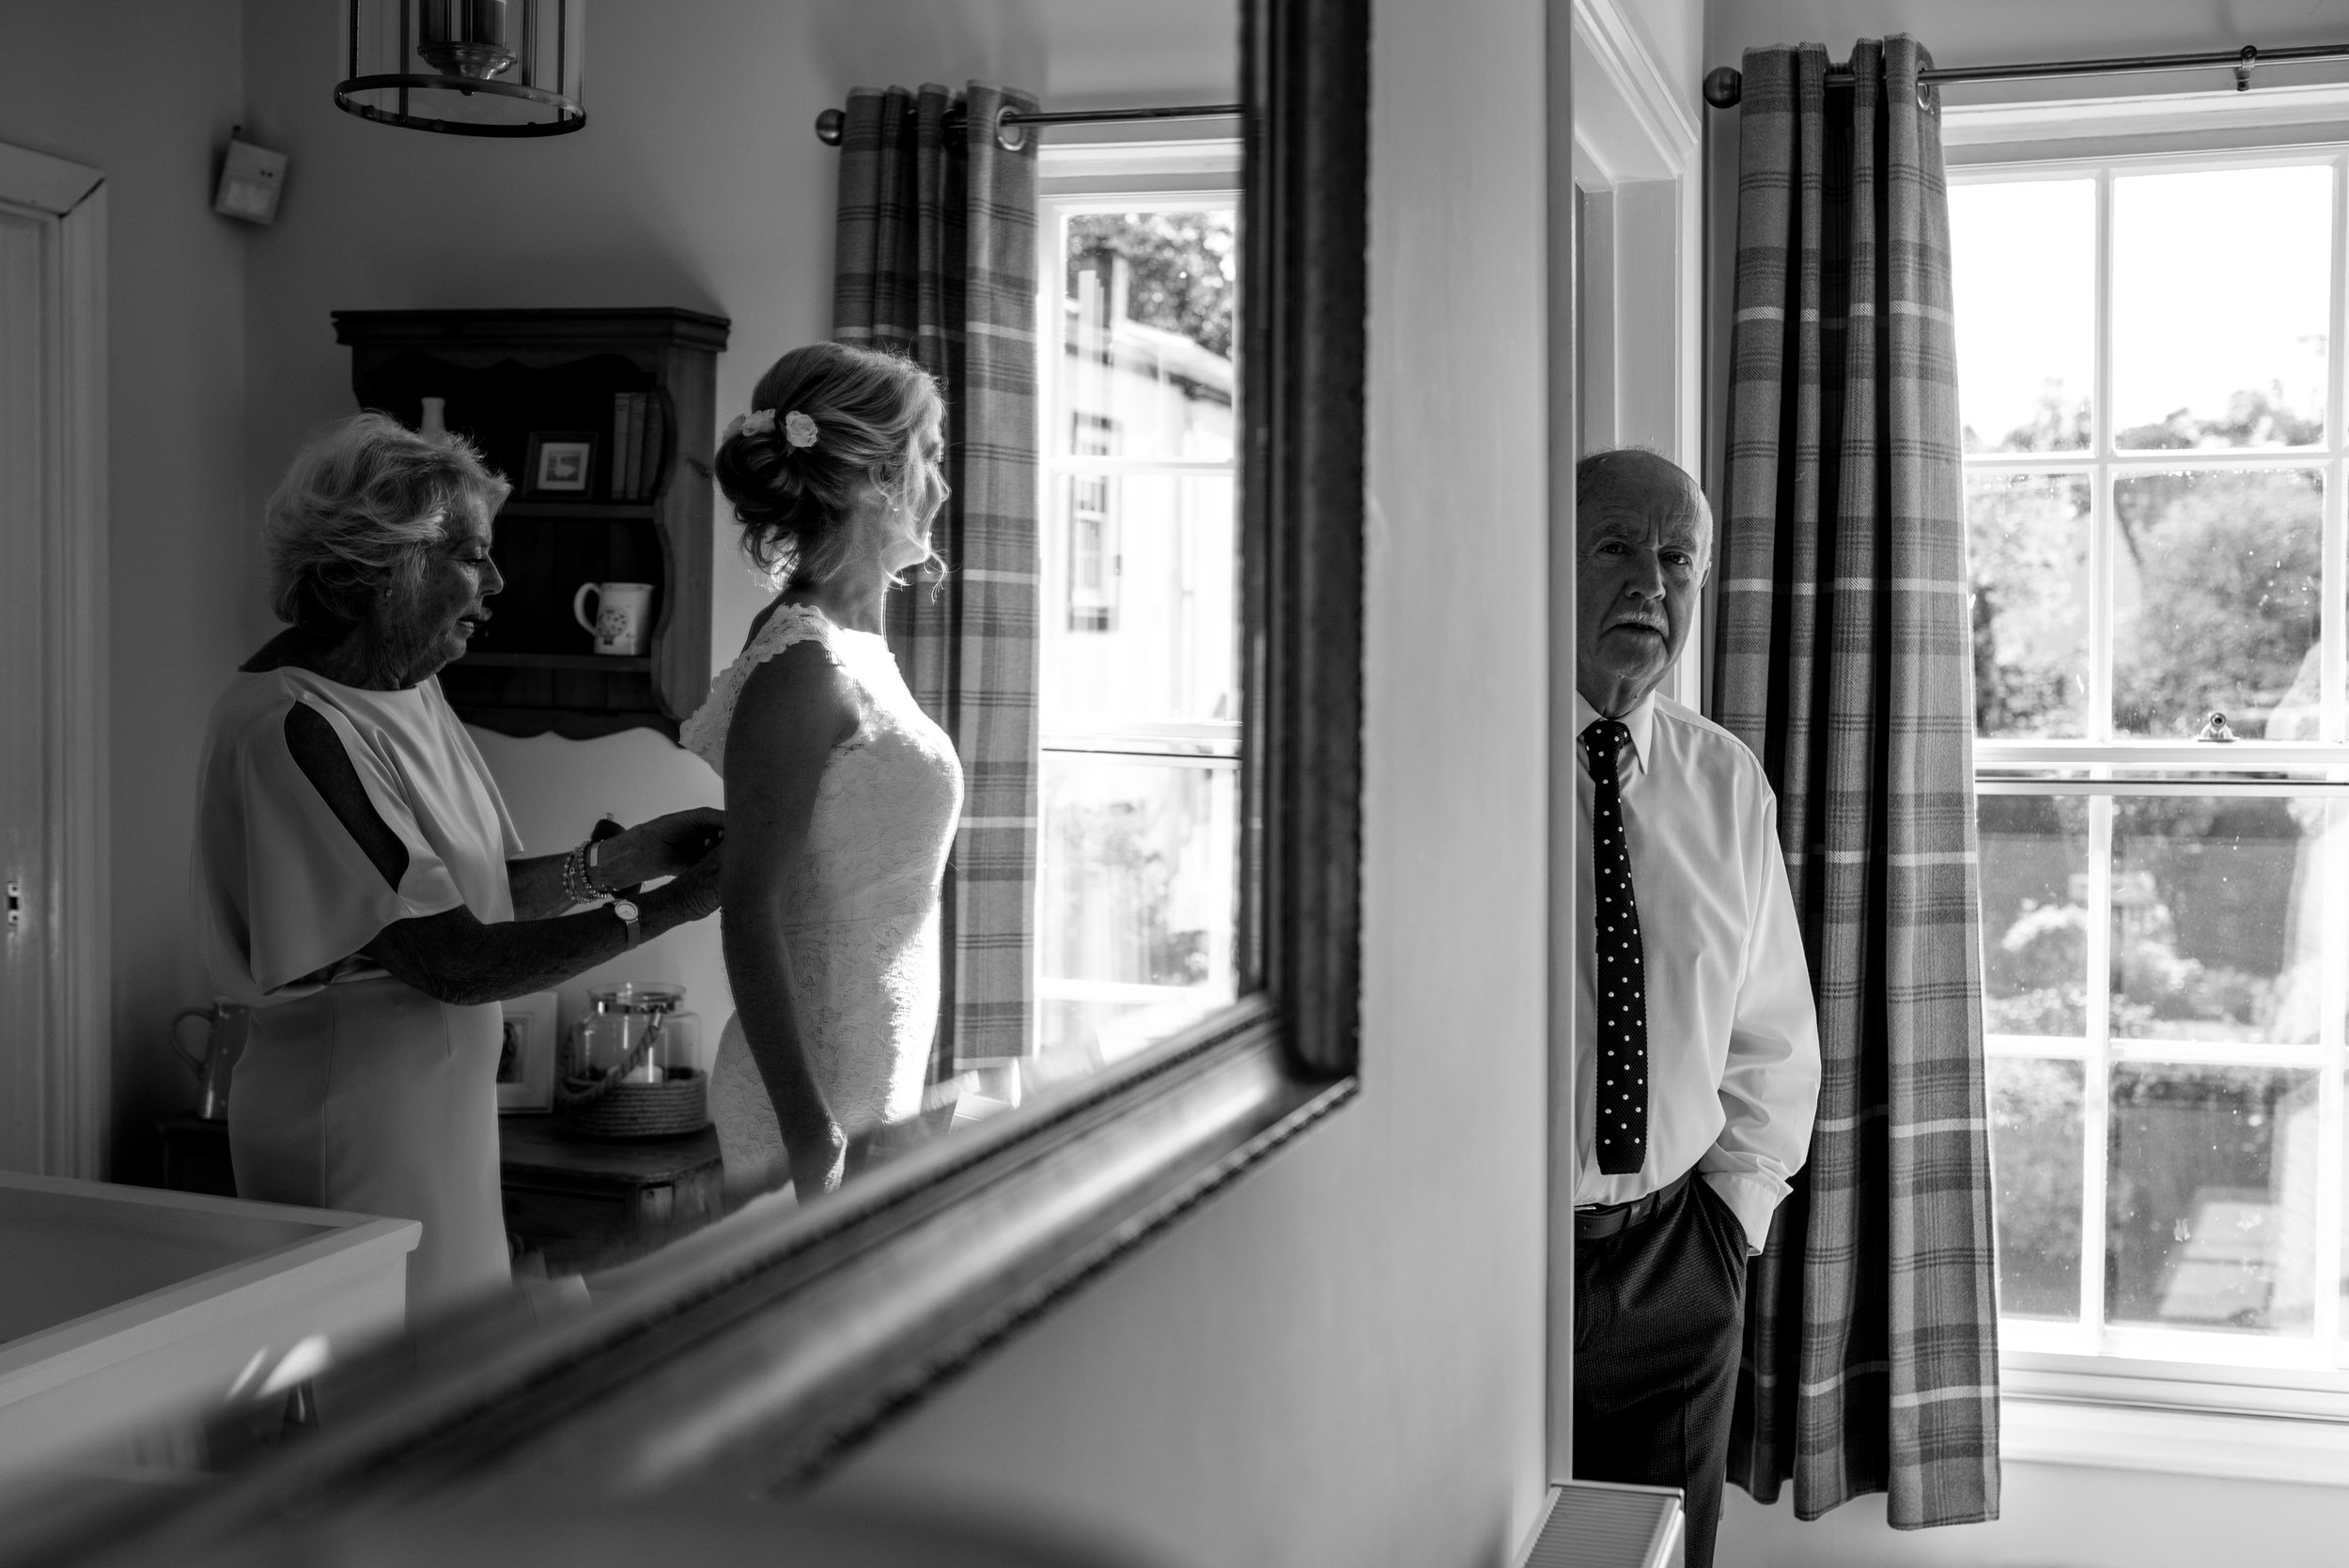 The brides father looks at the bride and her mother while she's getting dressed